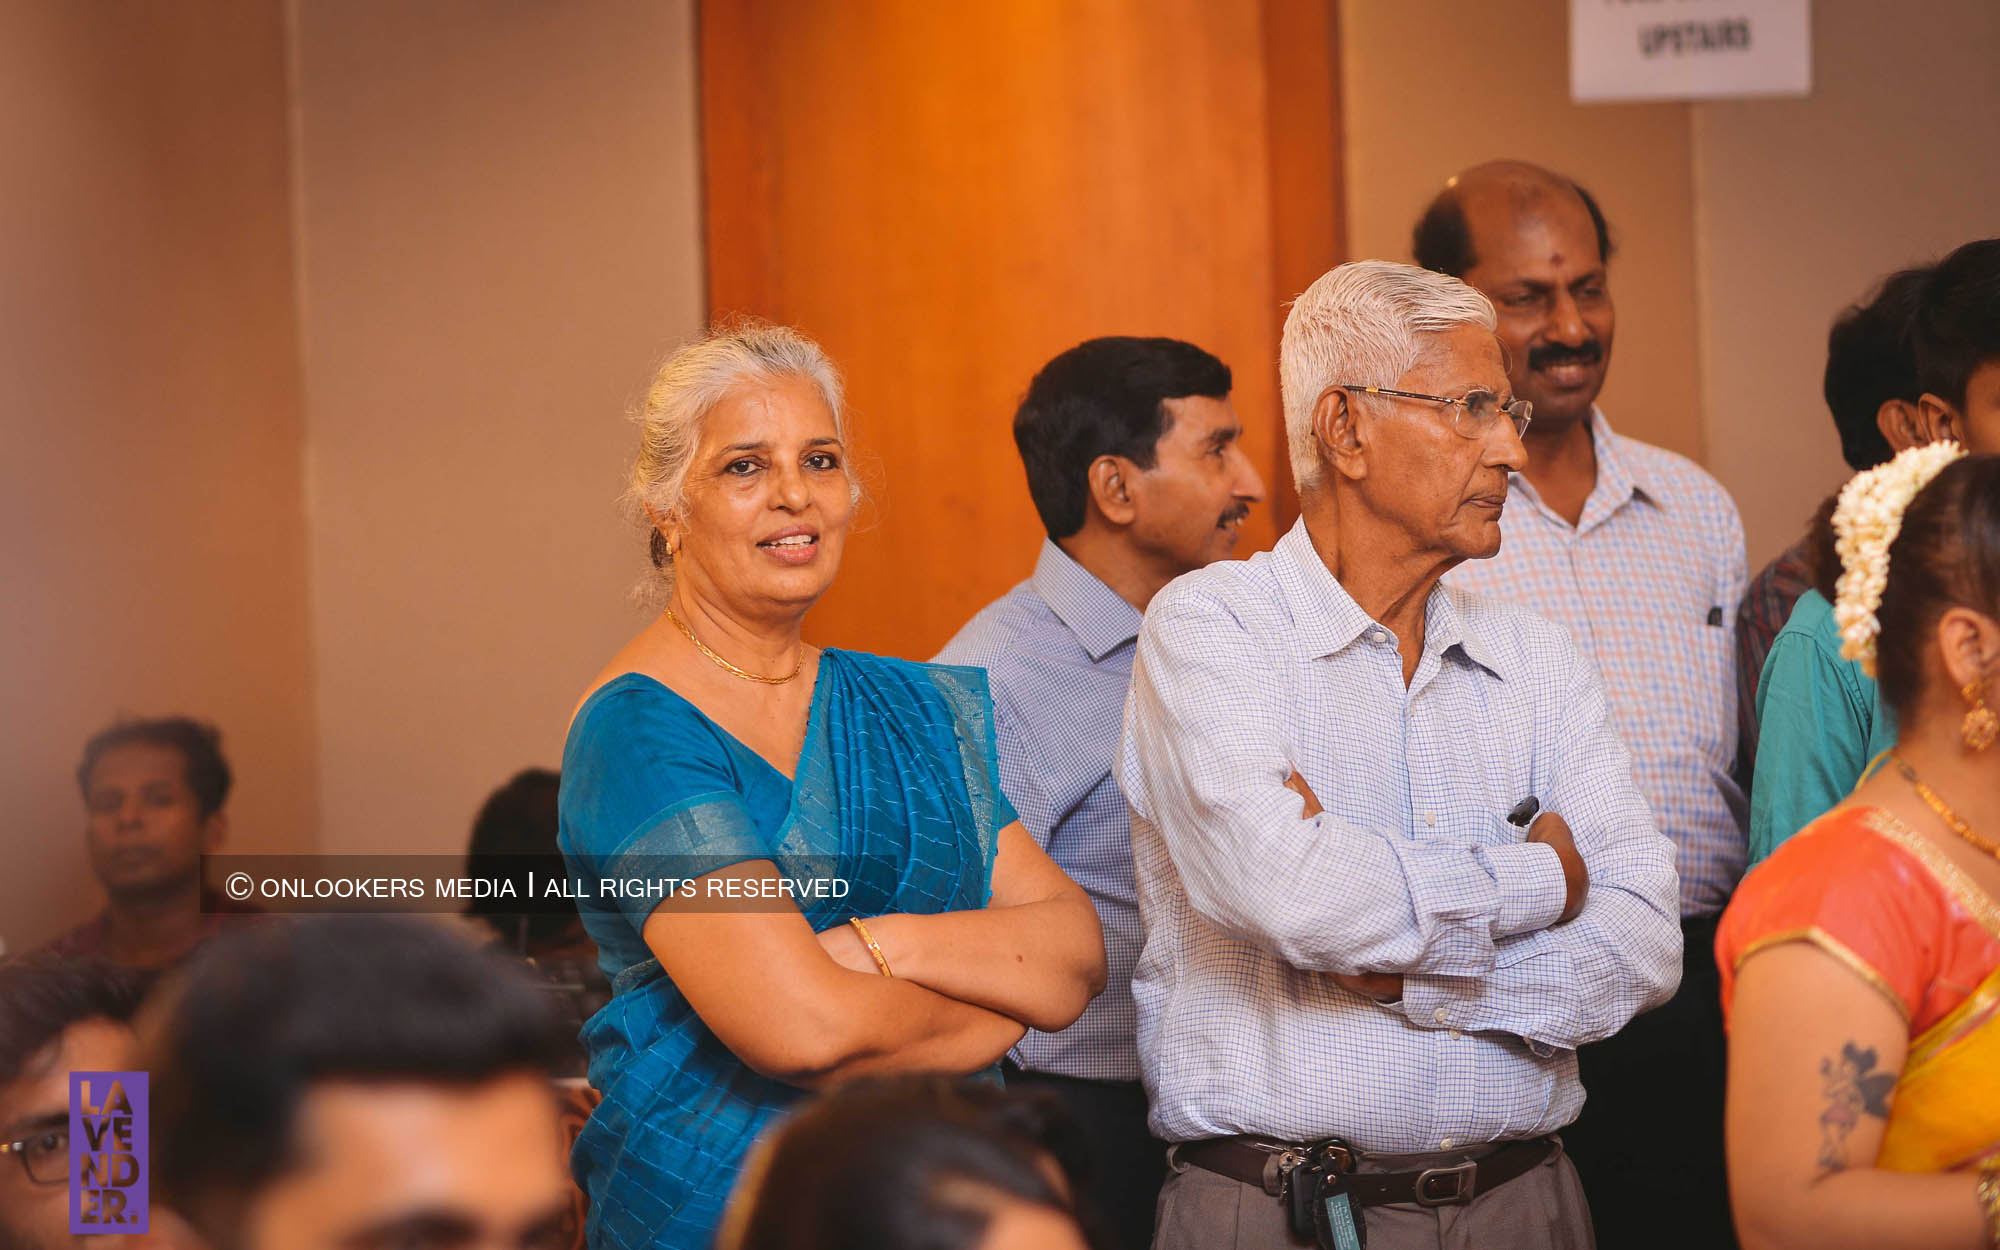 http://onlookersmedia.in/wp-content/uploads/2018/05/sreejith-vijay-wedding-stills-images-73.jpg